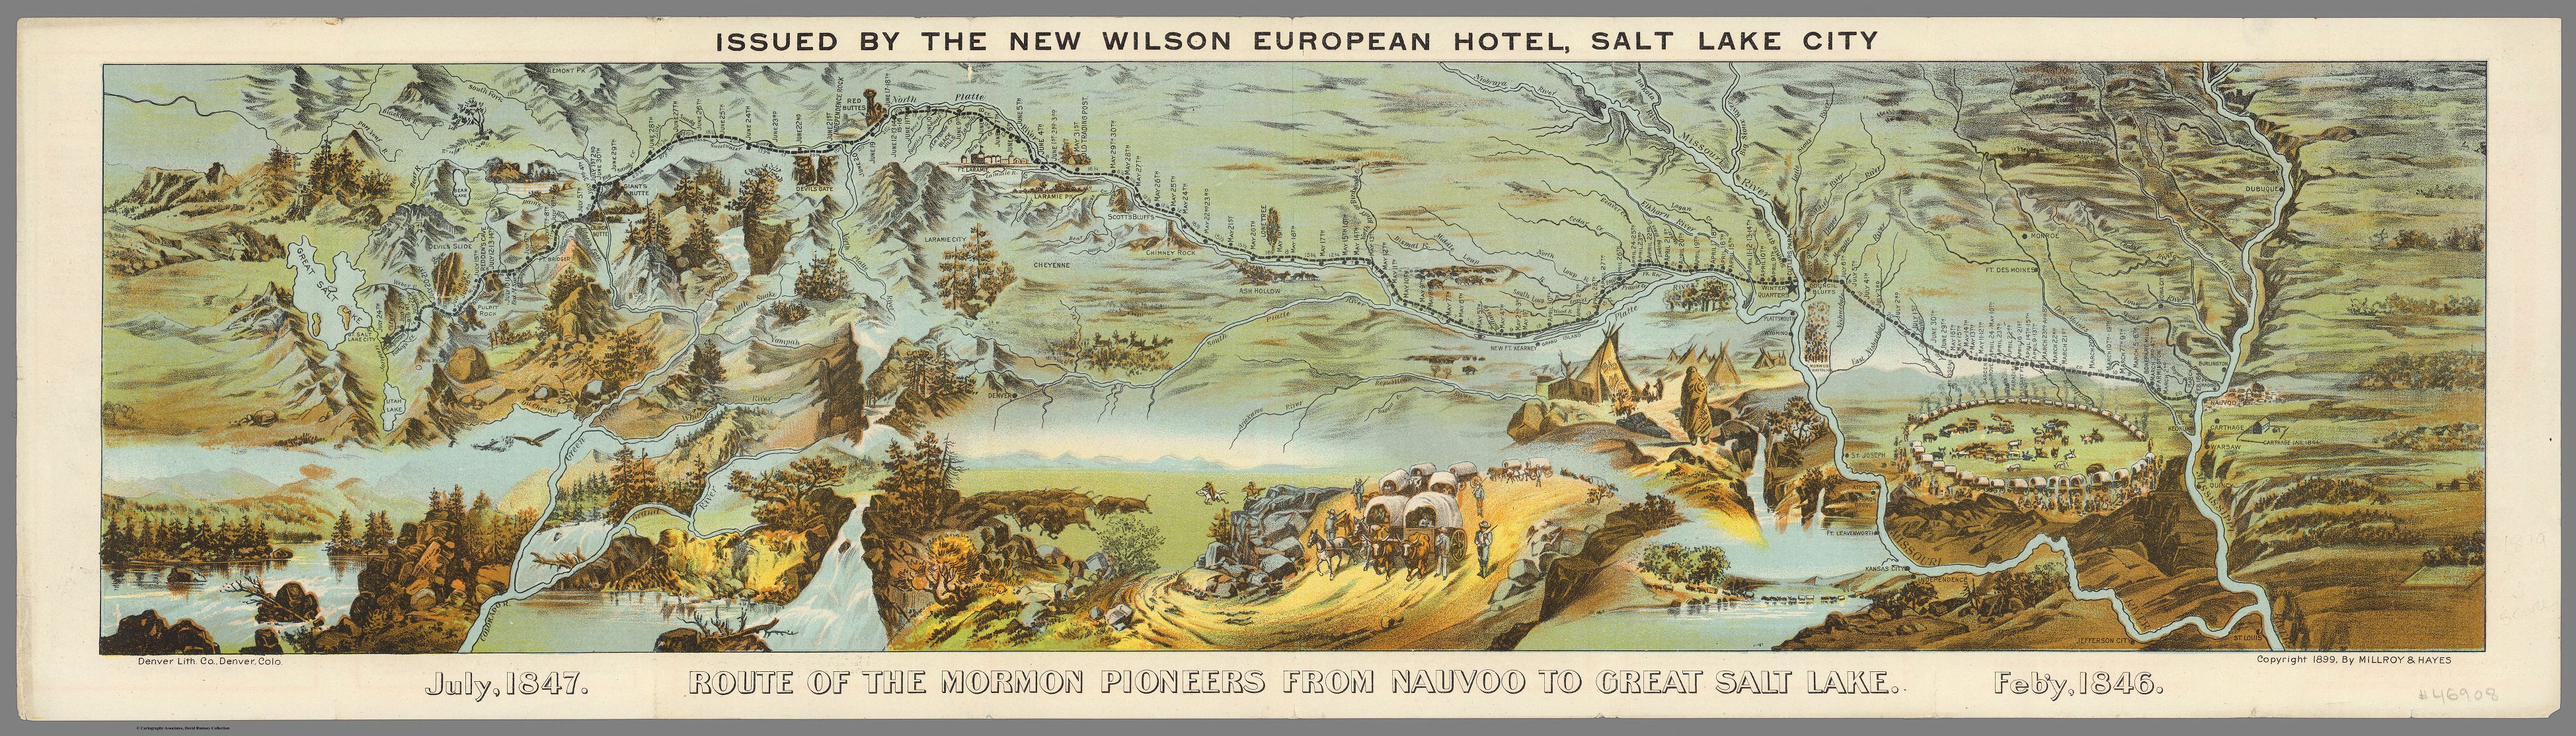 An 1897 map of the route of the Mormon pioneers from Nauvoo ... Salt Lake City Map Of on salt lake city heber stohl, salt lake city beaches, salt lake city skyline, salt lake city airport, salt lake city mountains, salt lake city inversion, salt lake city climate, salt lake city utah attractions, salt lake city map, salt lake city hotel luggage tag,